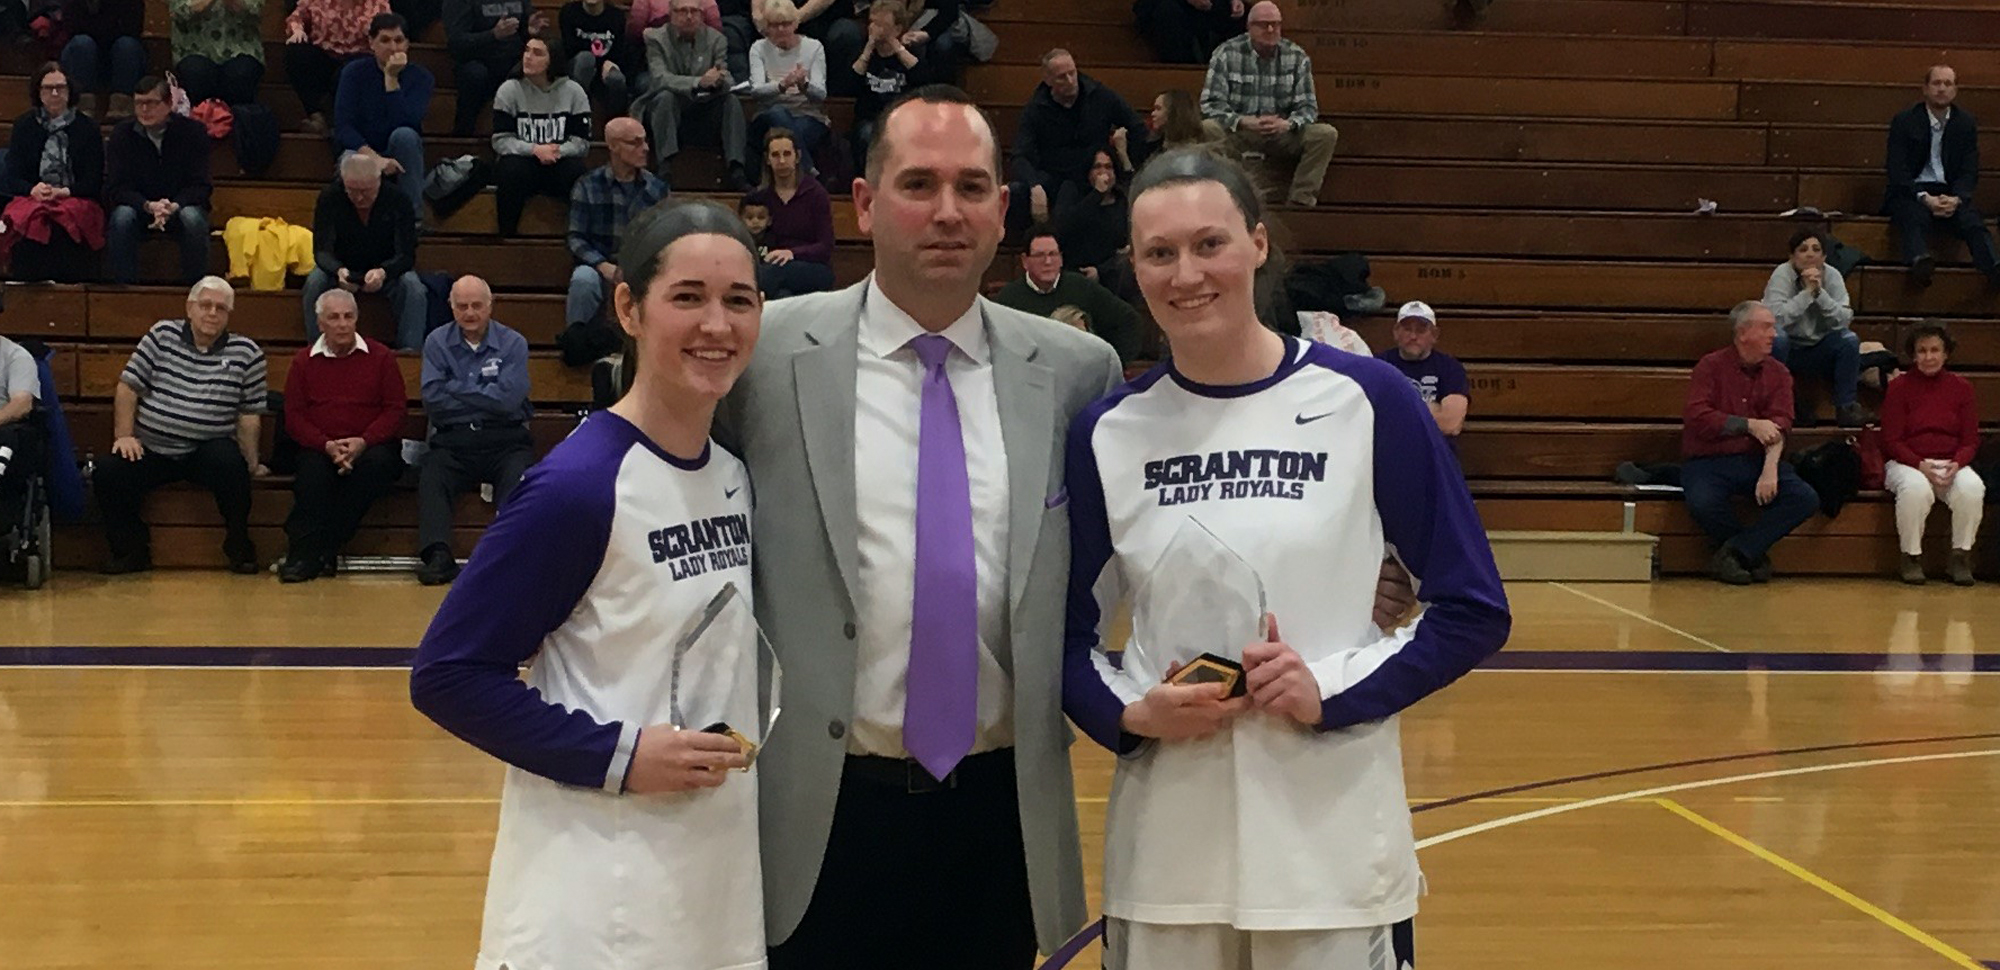 Senior Katie Broderick and Katie Feehery were honored prior to Saturday's win over Catholic.